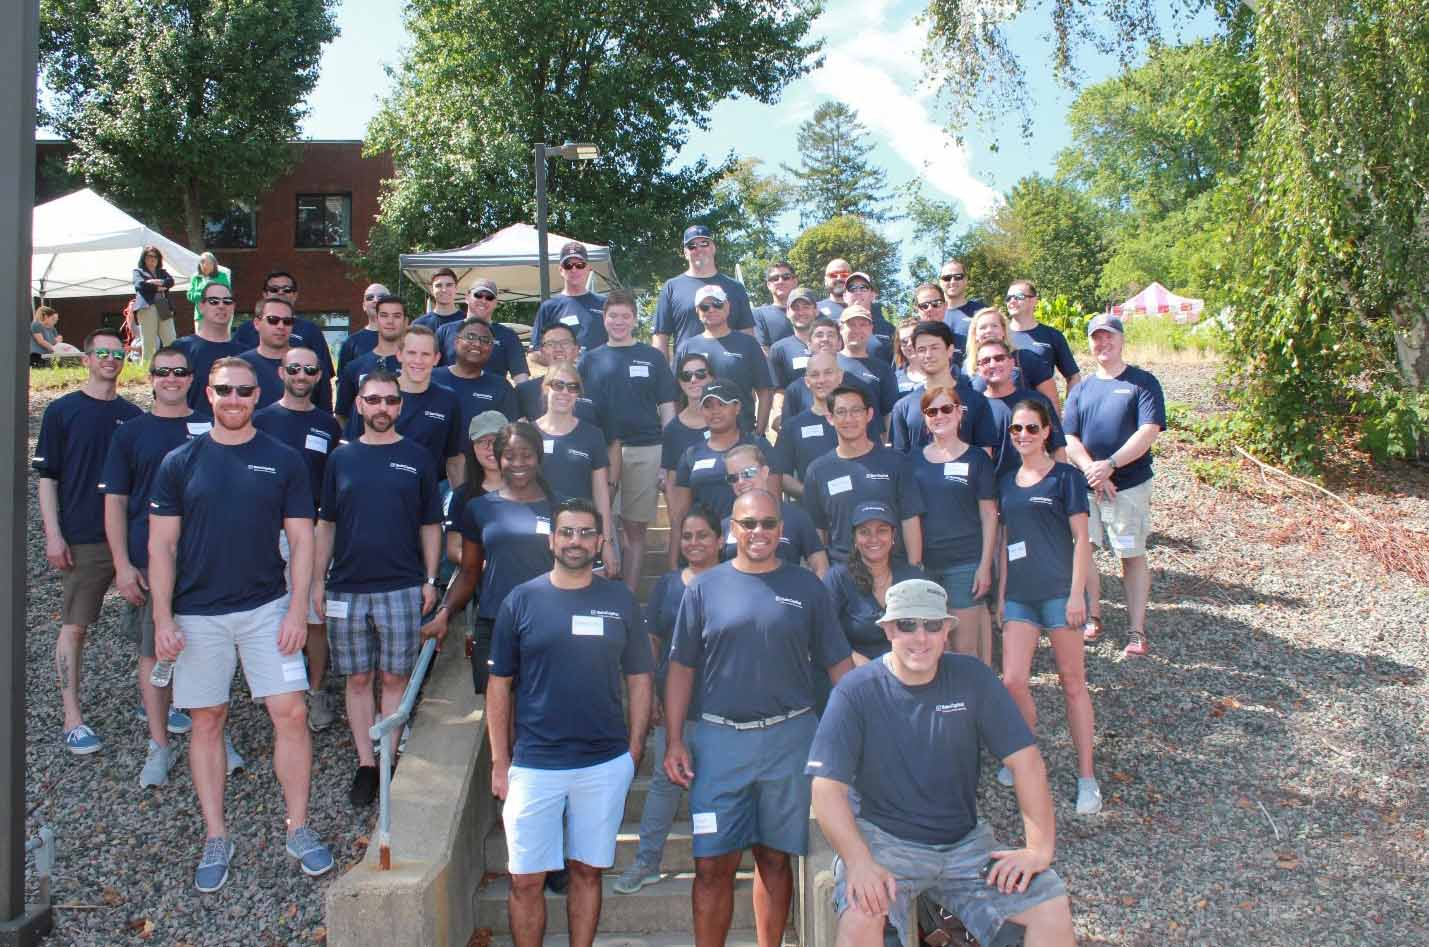 Bain Capital Information Technology Team Participates in Annual Service Day with Italian Home for Children